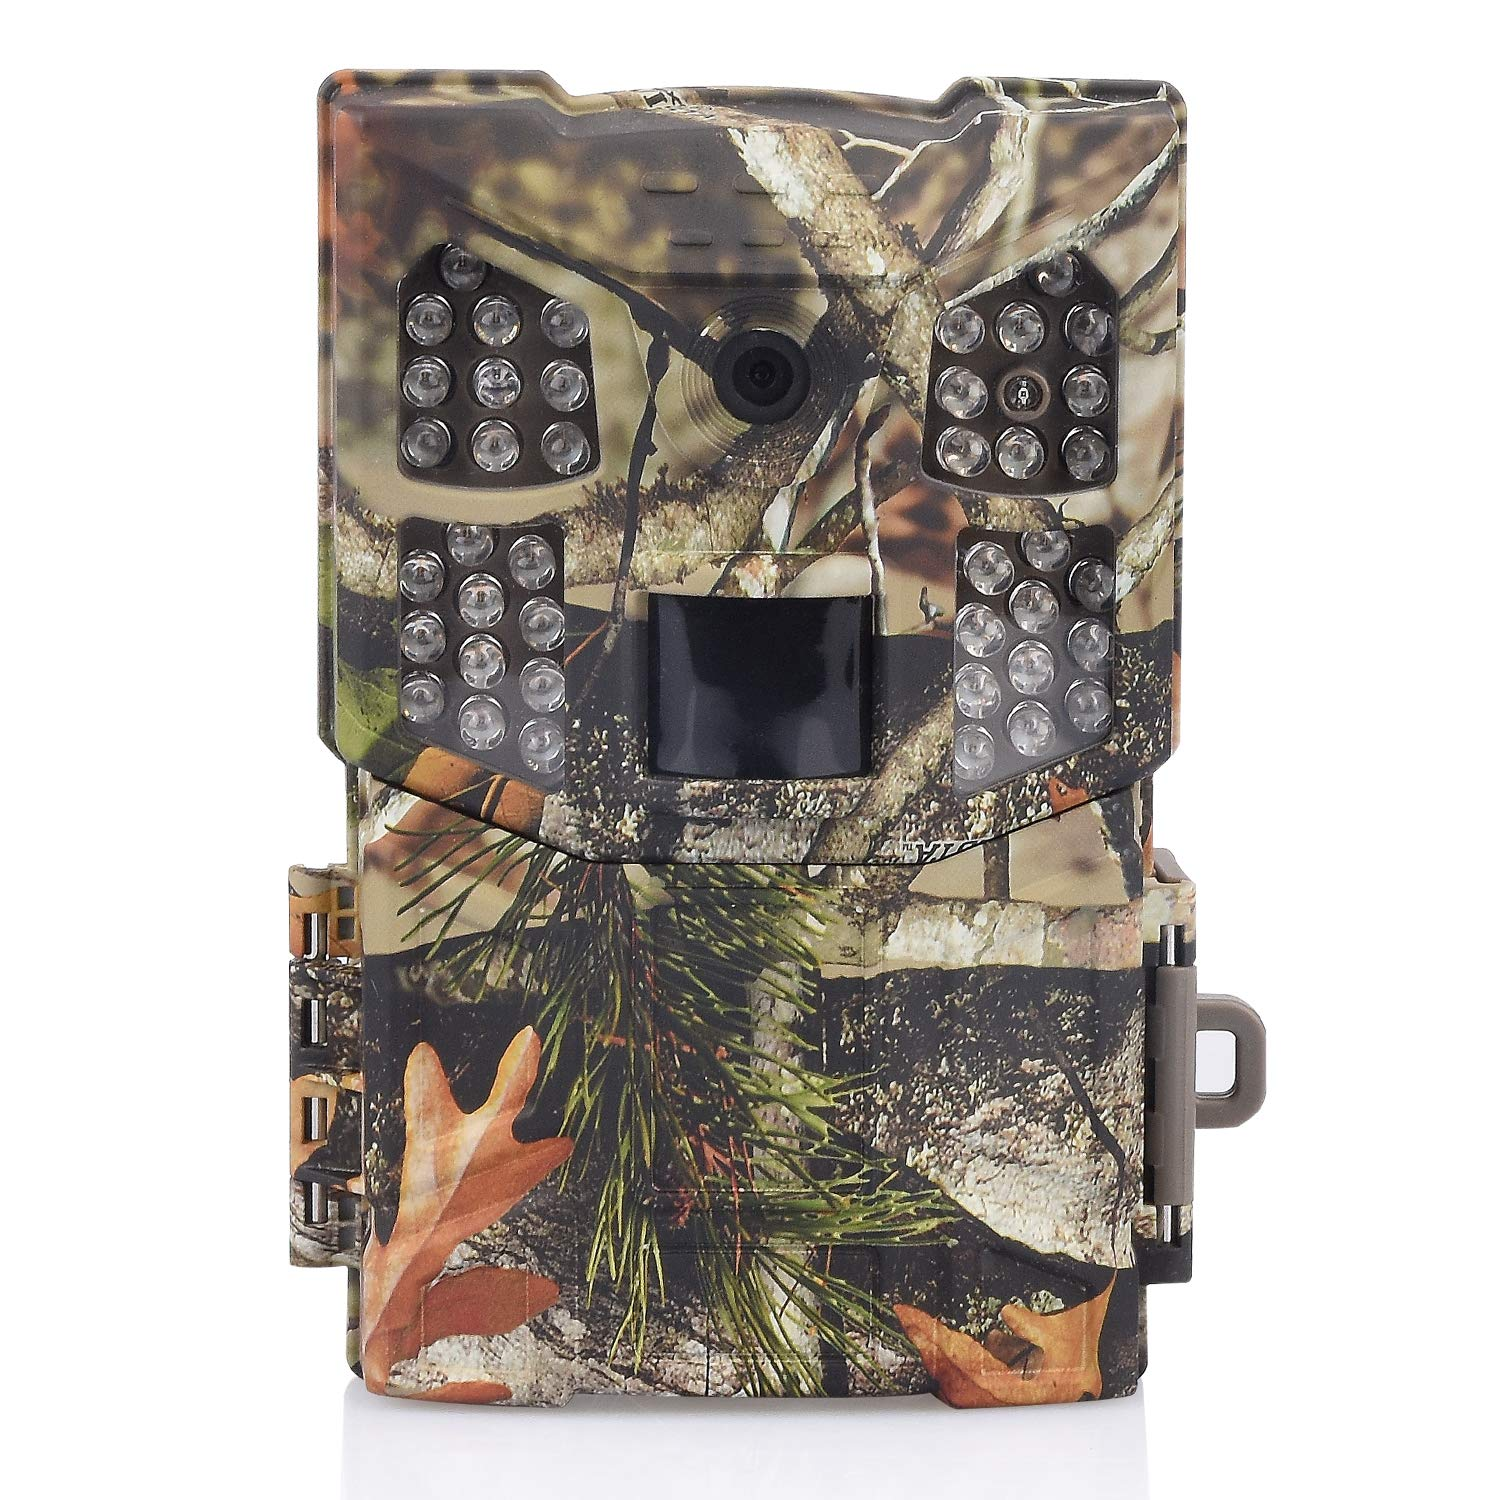 WOSPORTS Trail Camera Hunting Game Camera, 2019 Newest Motion Activated Night Vision up to 65ft, 12MP 1080P Full HD 2.4…